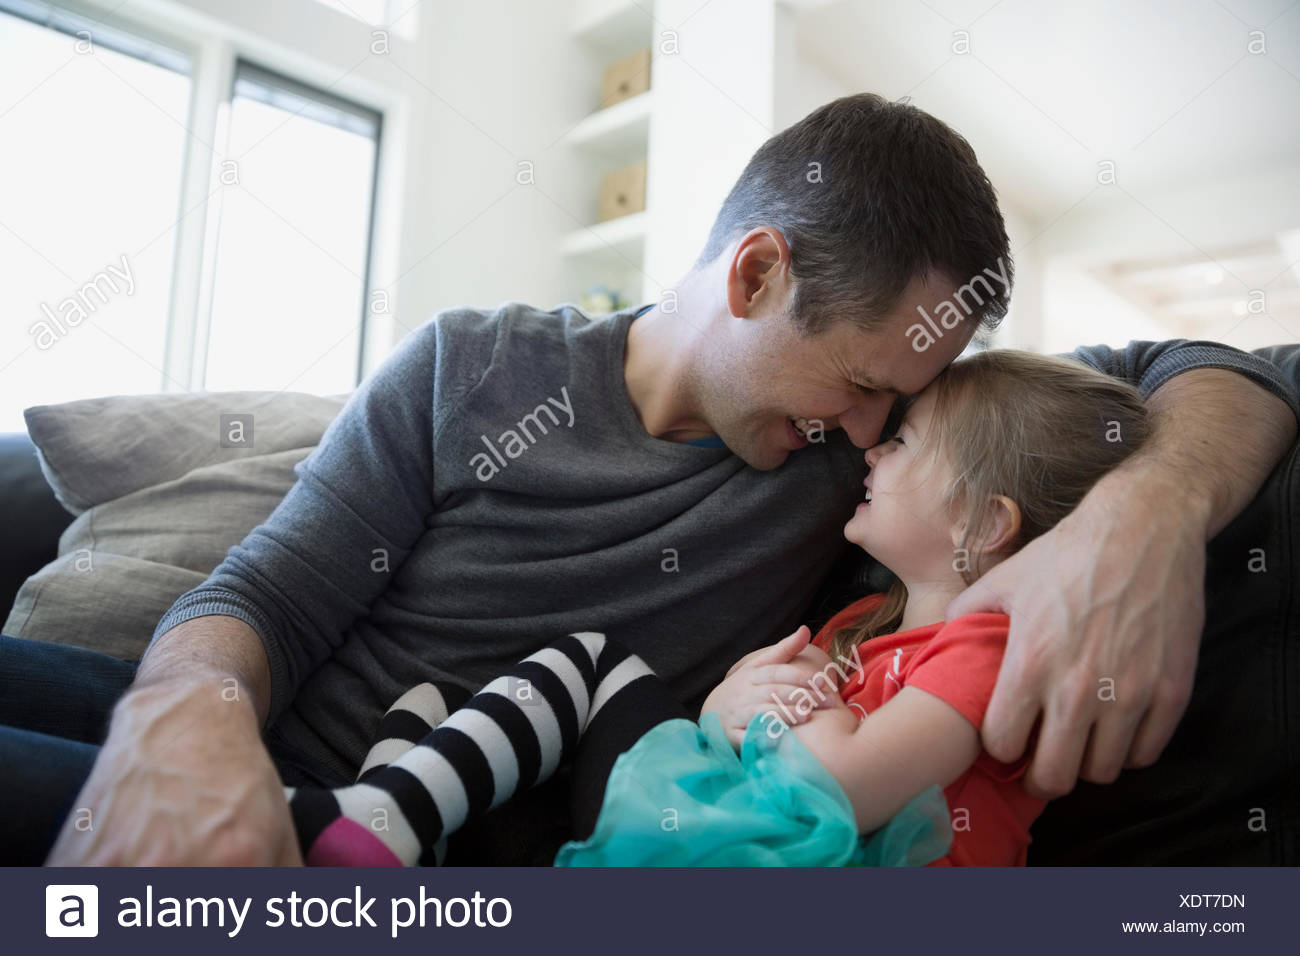 Affectionate father and daughter rubbing noses on sofa - Stock Image